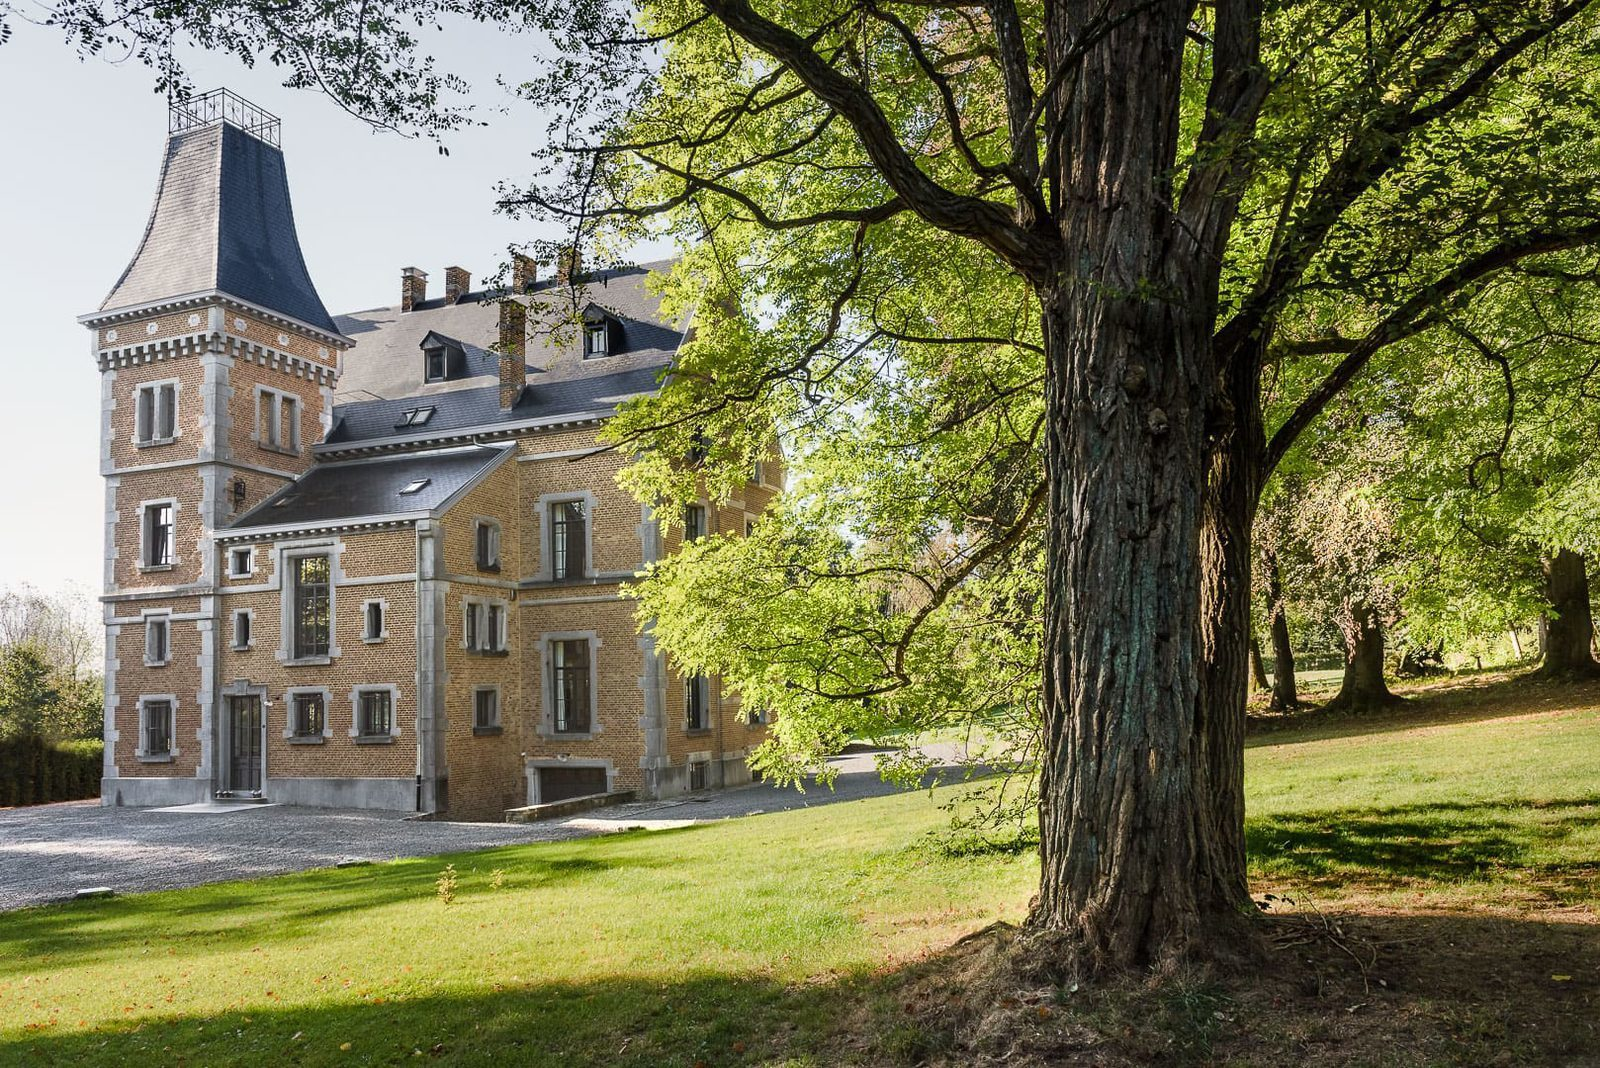 Chateau Beausaint